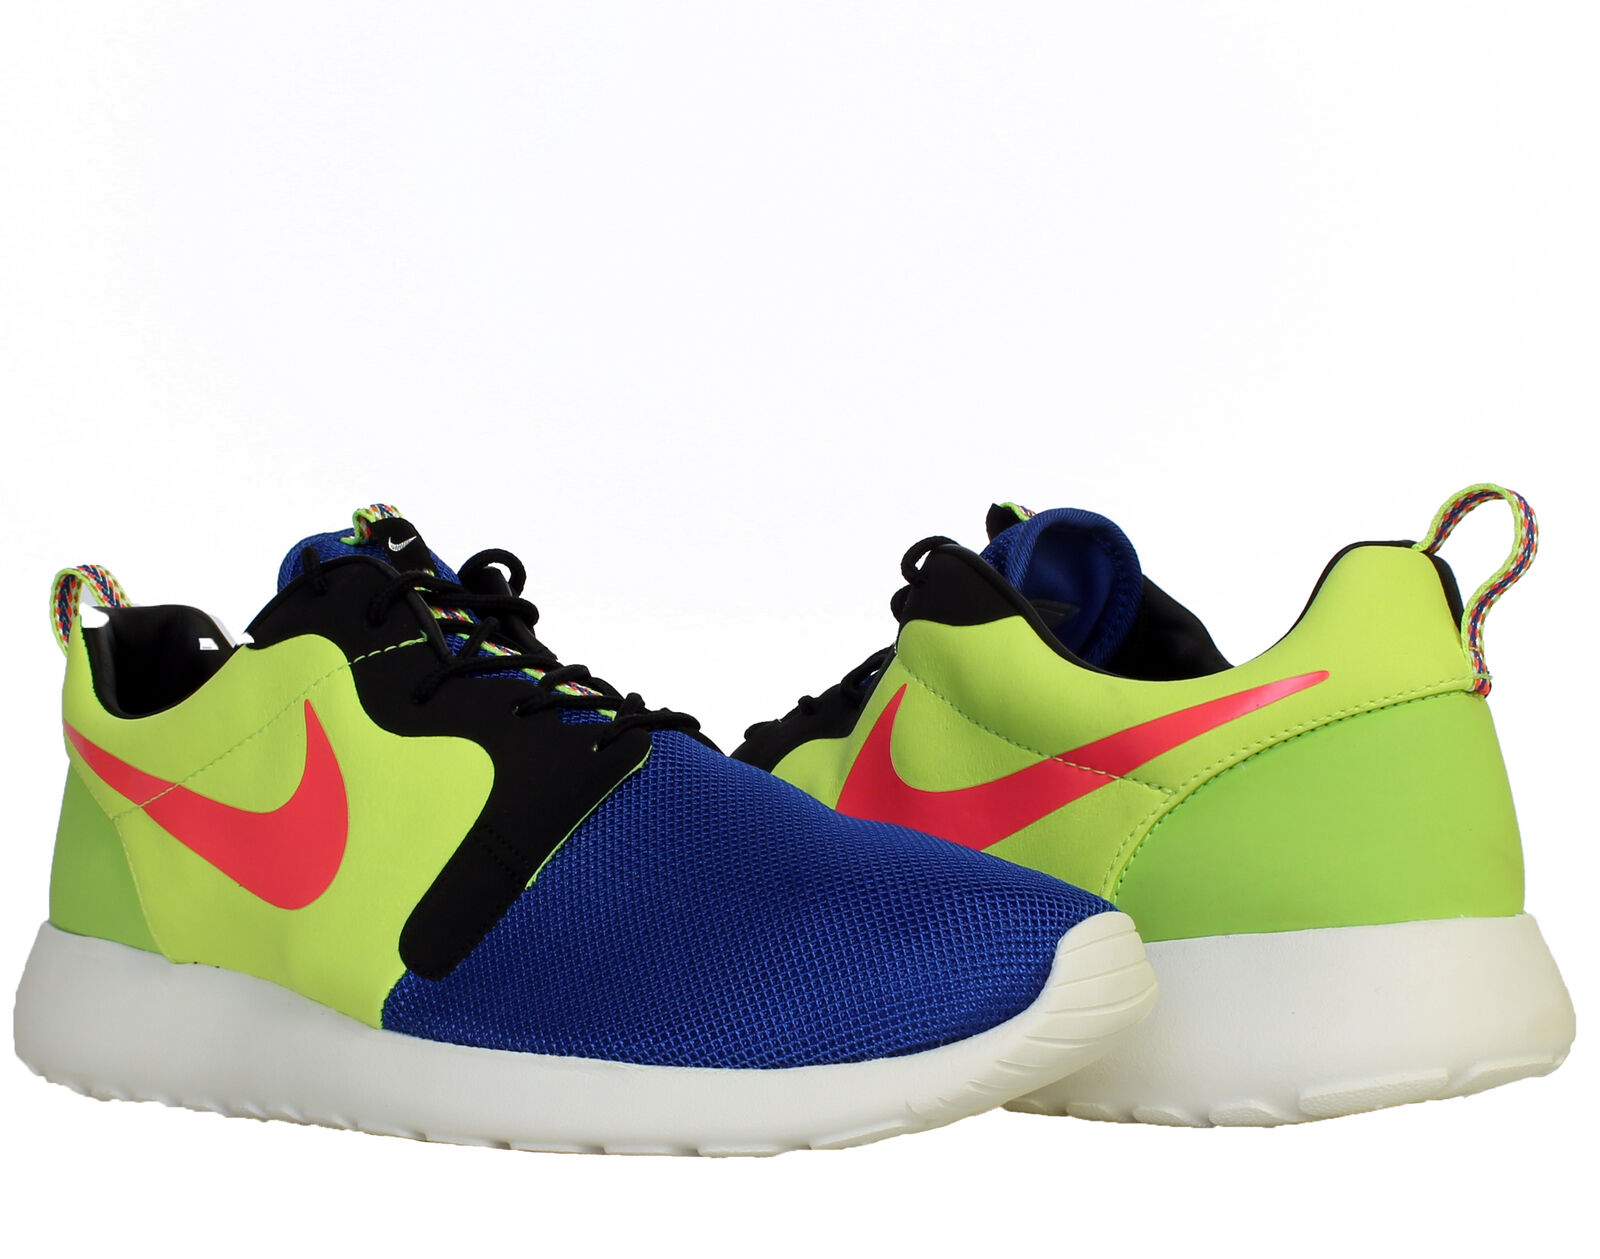 new style aeed3 ee9b0 Nike Rosherun HYP PRM QS Royal Punch-Volt Men s Running Shoes Shoes Shoes  669689